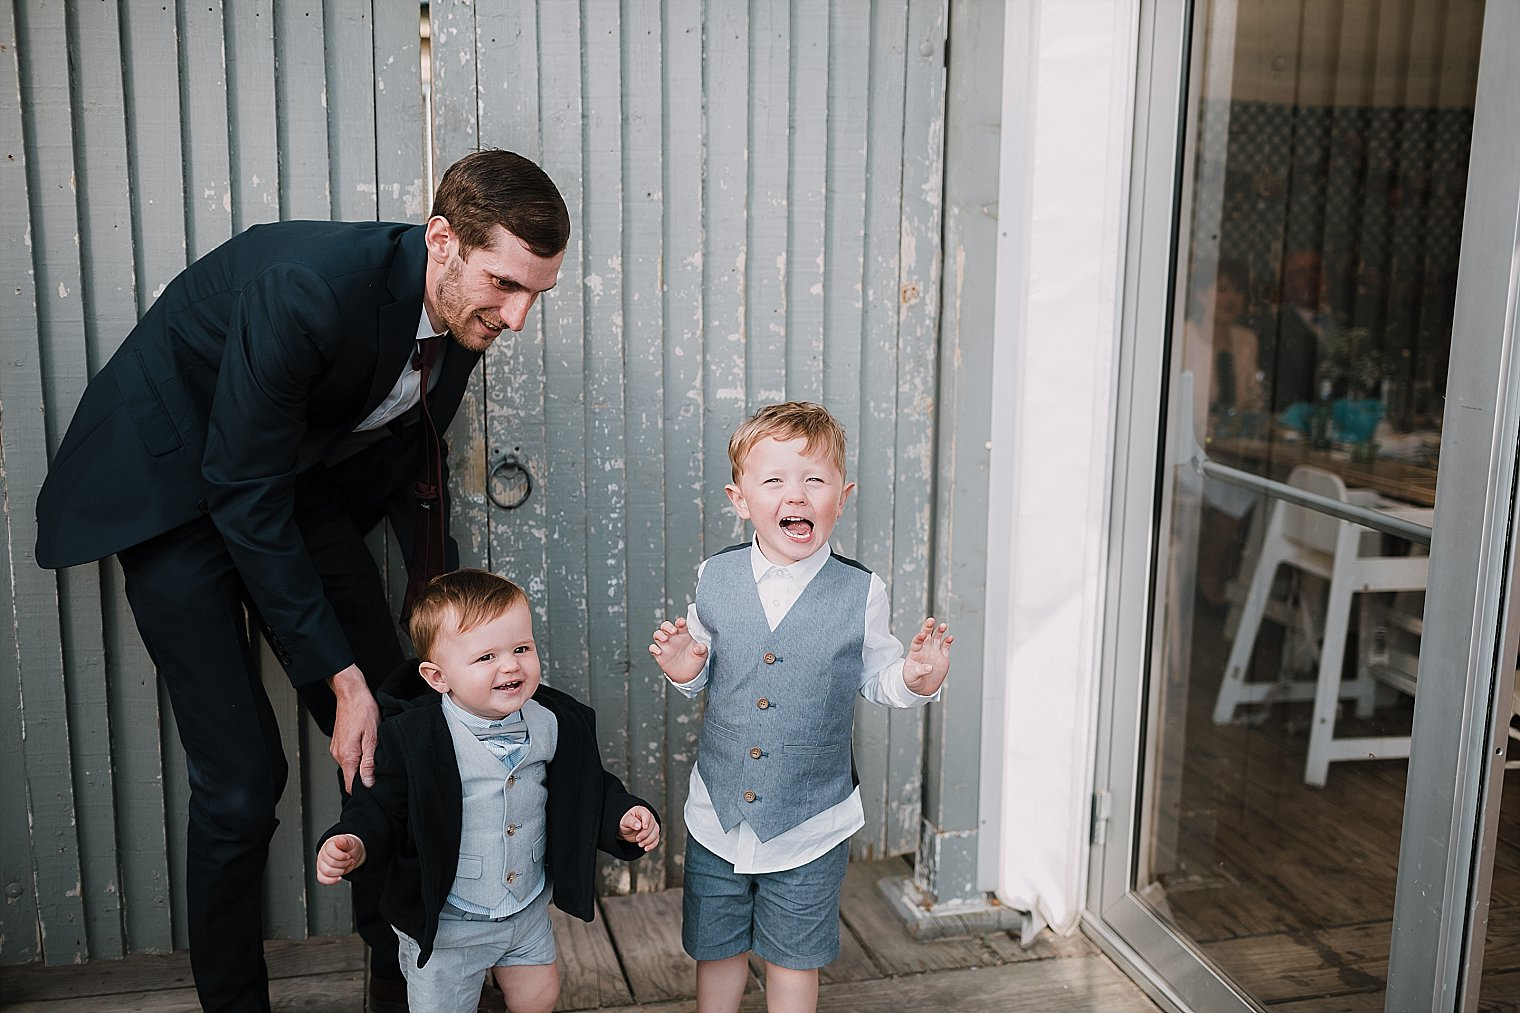 Young wedding guests laughing